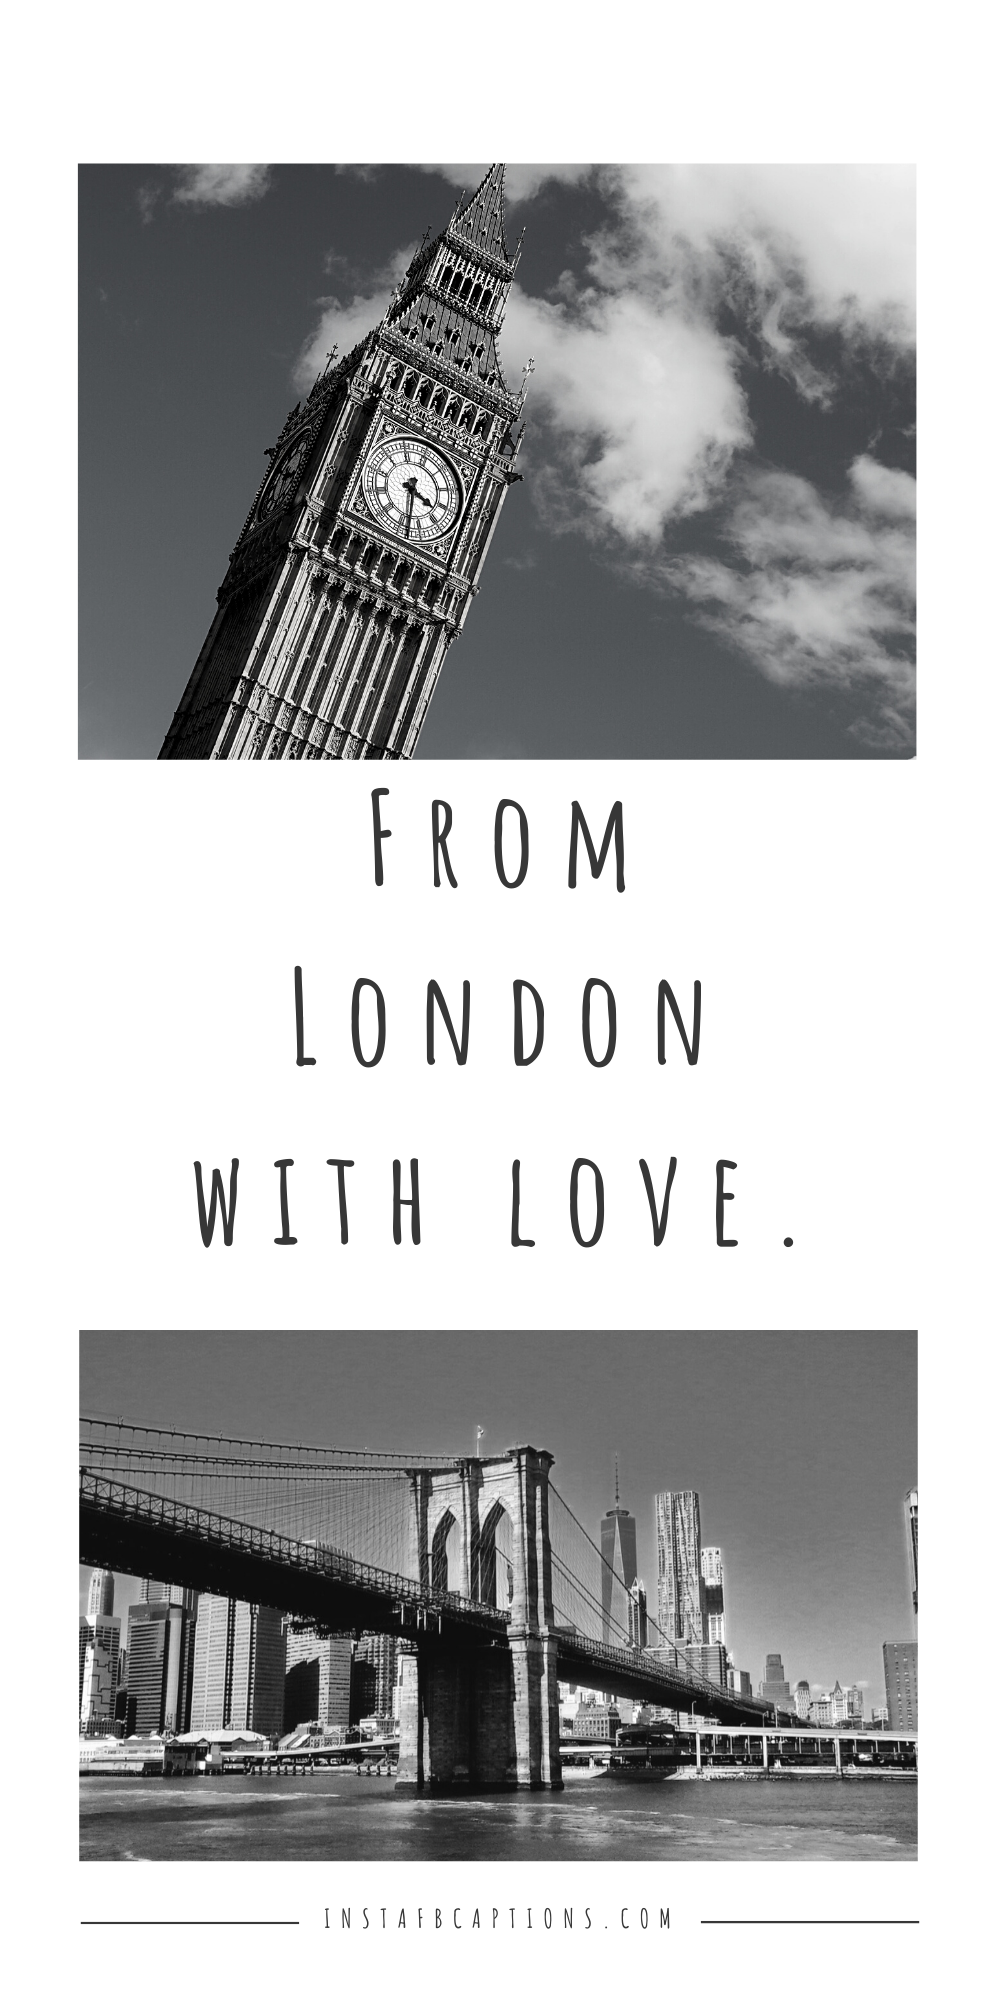 Quotes On London Diaries To Use As Captions In 2021  - Quotes on London Diaries to Use as Captions in 2021 - 99+ LONDON Instagram Captions for London Diaries, Bus, & Dreams in 2021